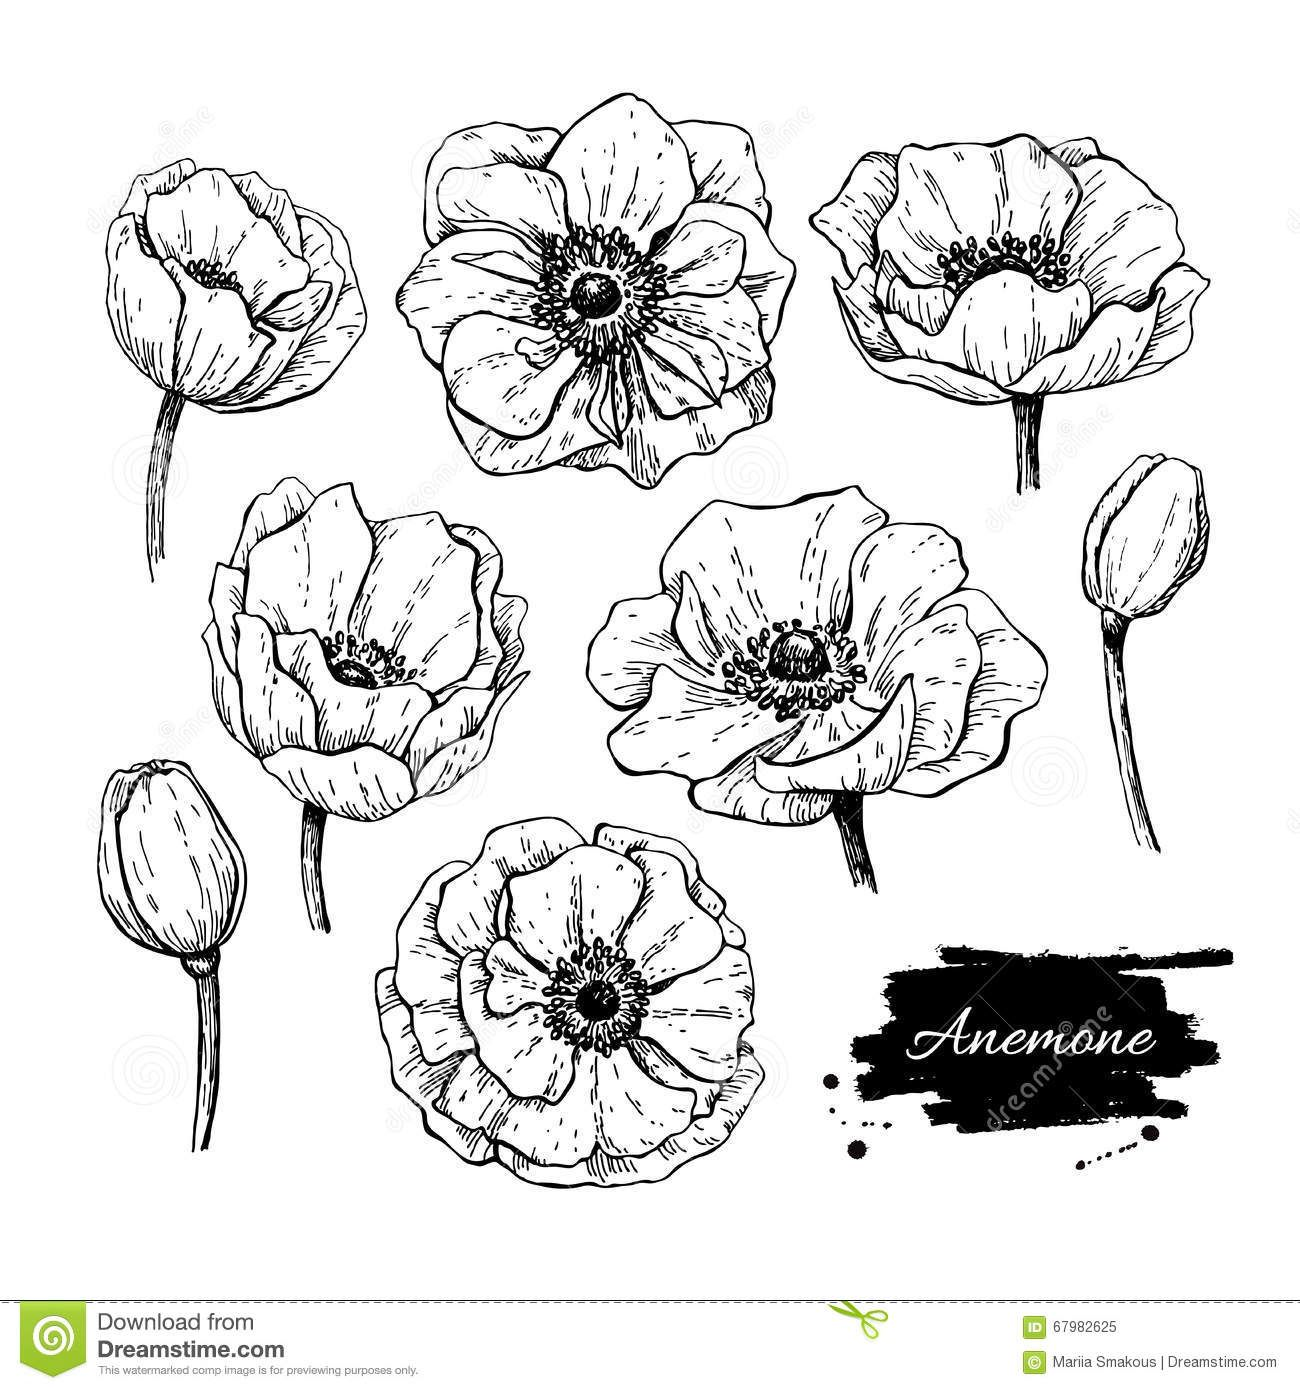 Vector Vintage Anemone Set Hand Drawn Illustration Stock Vector Image 67982625 Pencil Drawings Of Flowers Floral Drawing Anemone